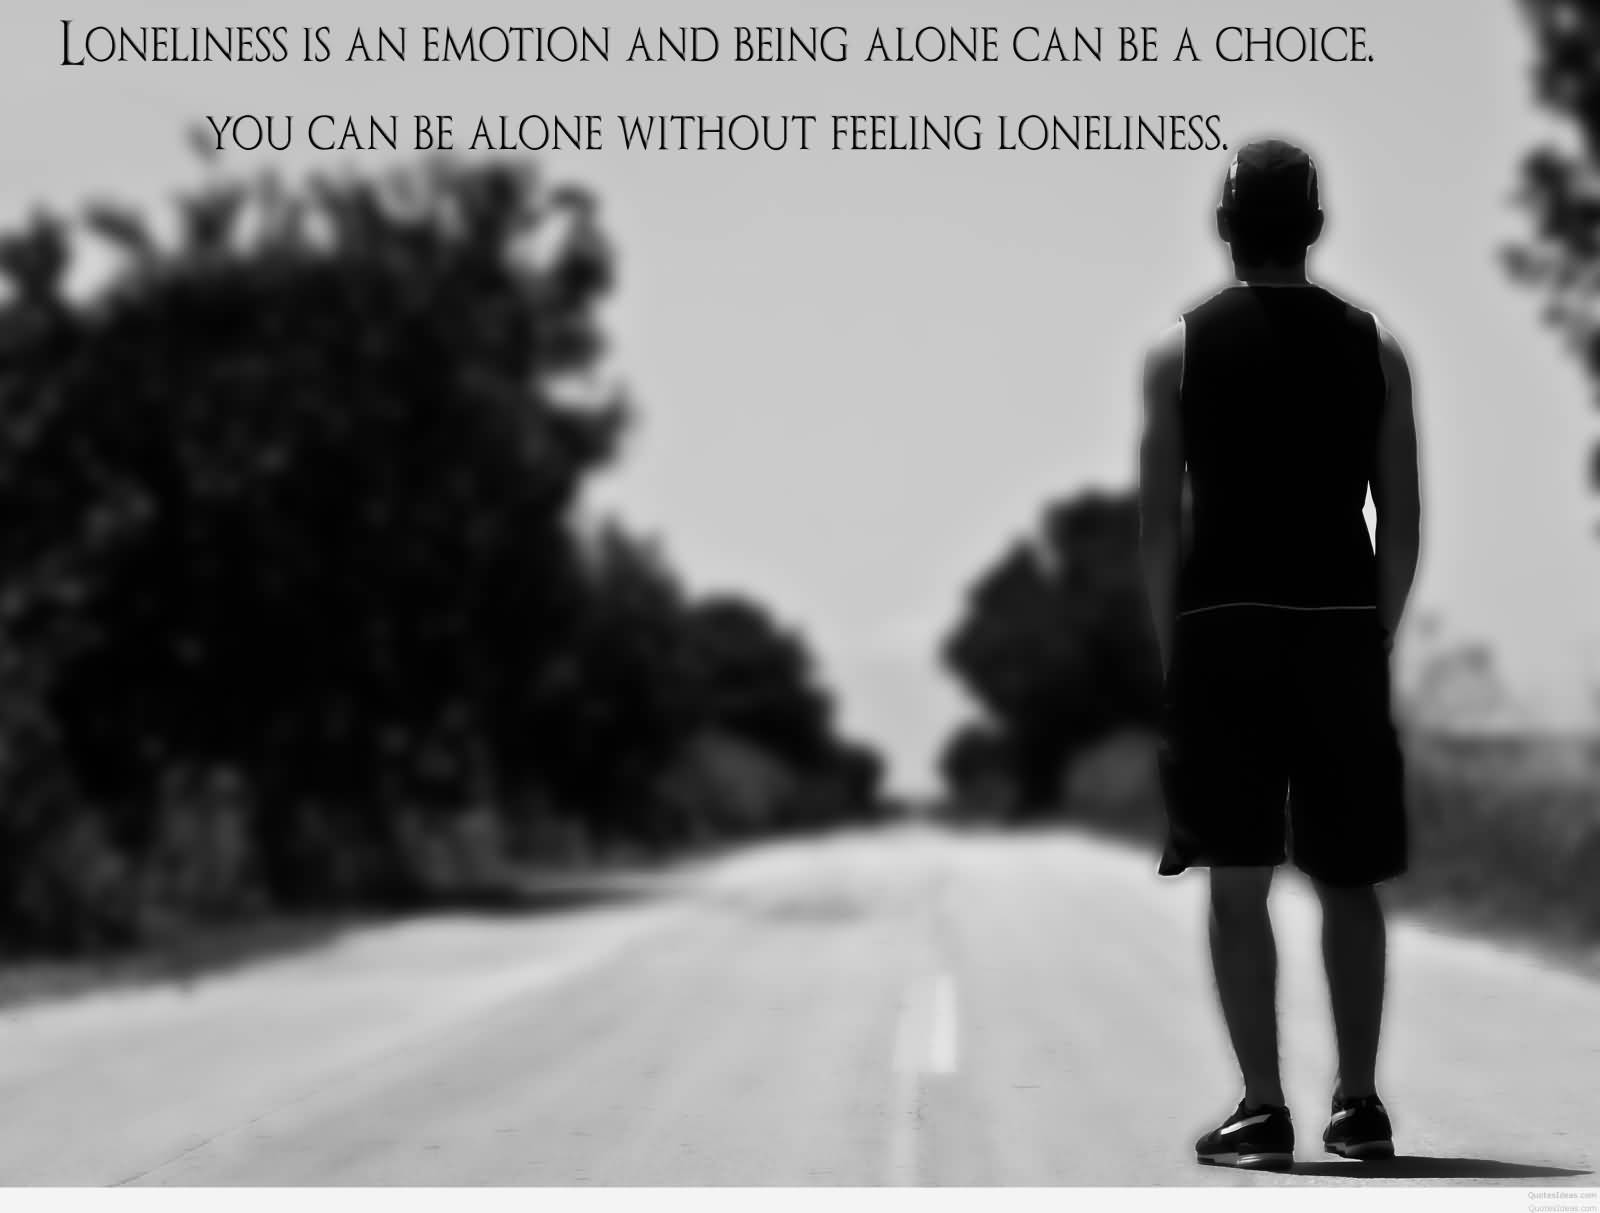 Saying Quotes About Sadness: 62 Best Loneliness Quotes And Sayings